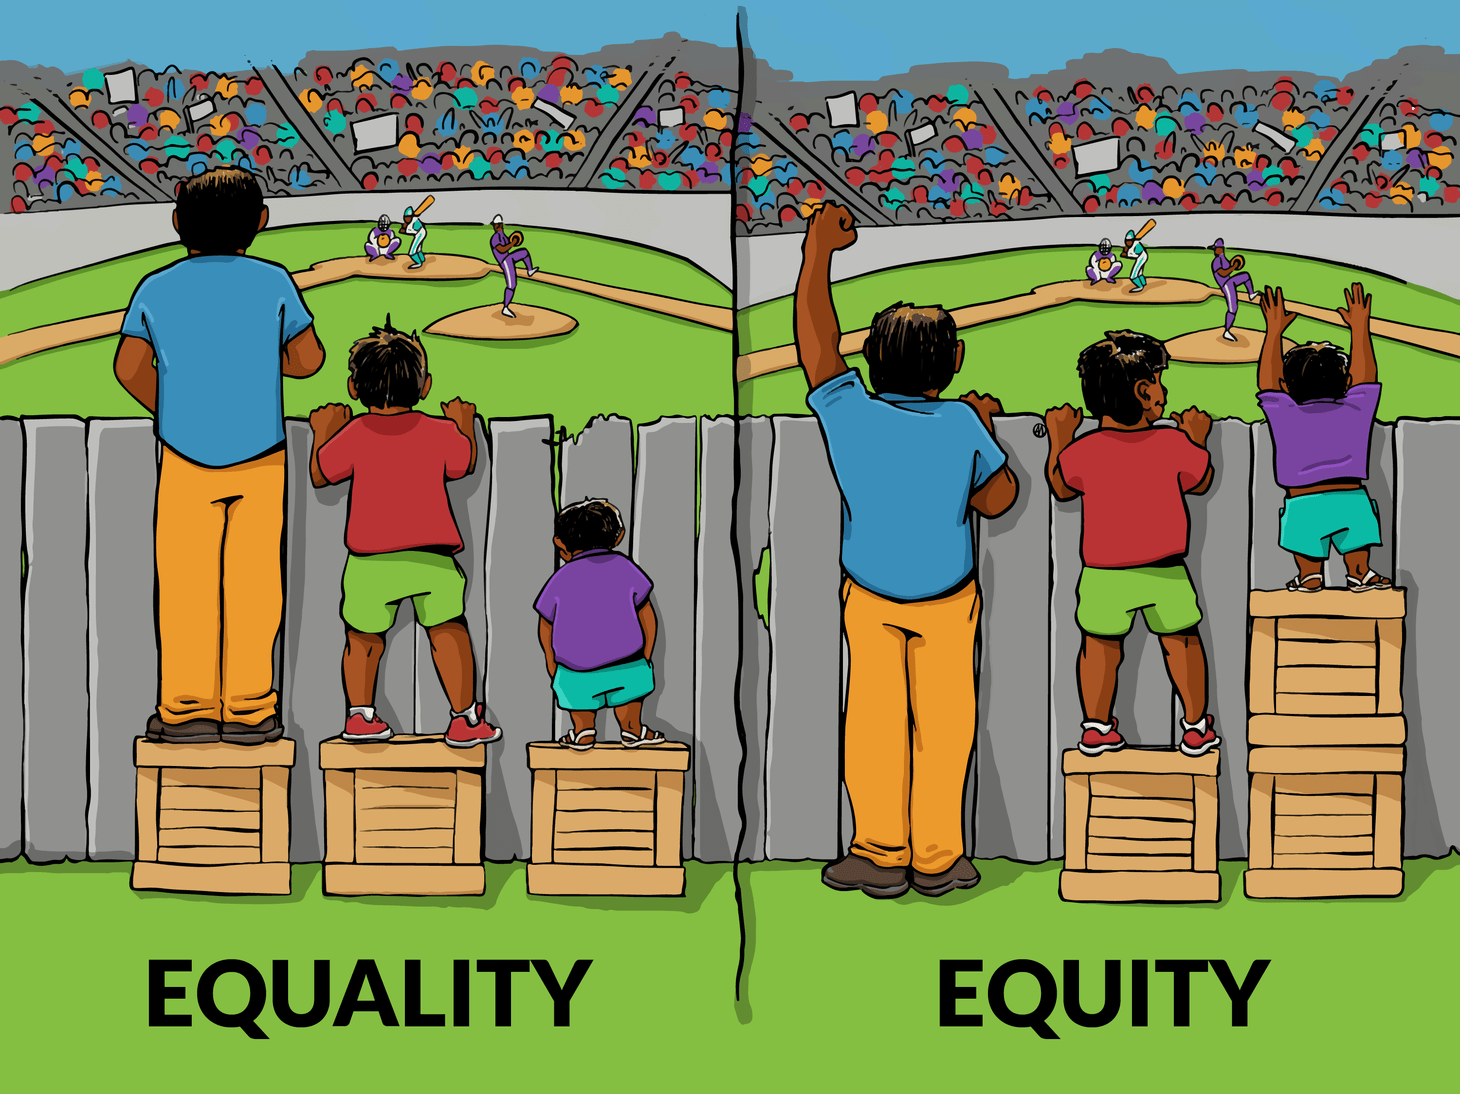 Image showing difference between equality and equity